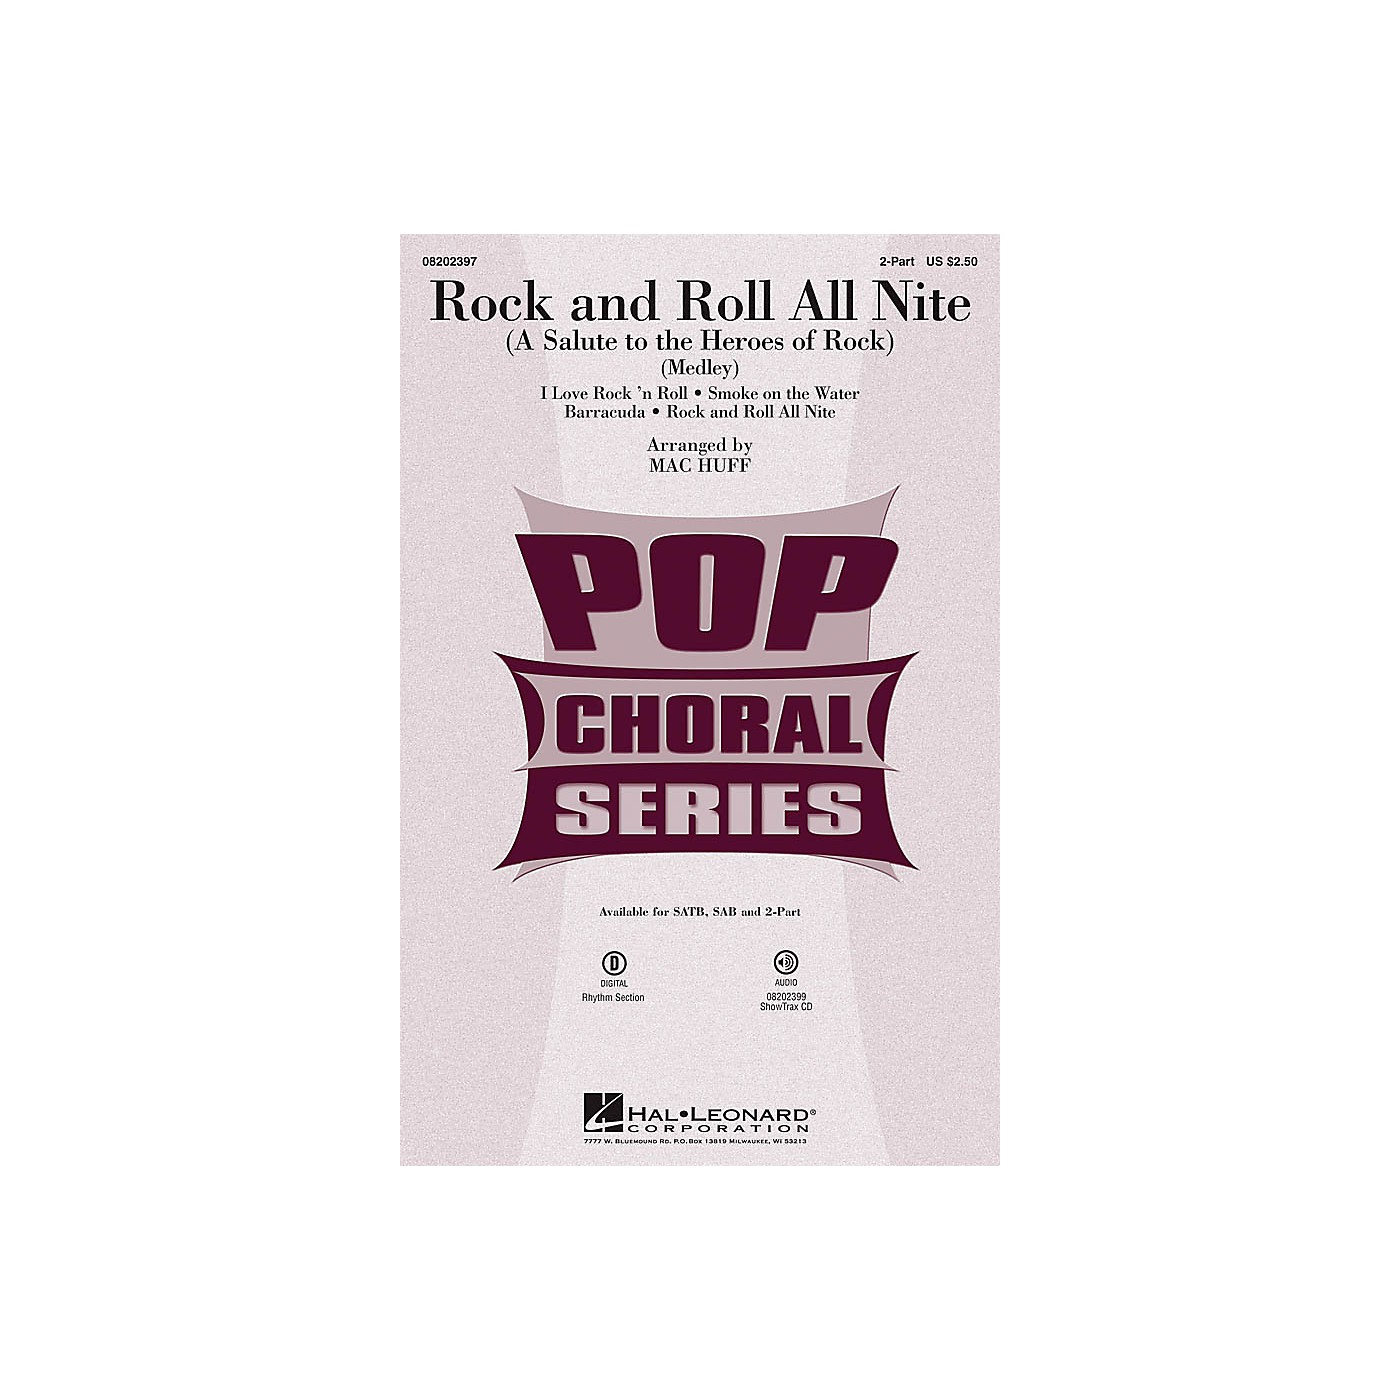 Hal Leonard Rock and Roll All Nite (A Salute to the Heroes of Rock) 2-Part by Various arranged by Mac Huff thumbnail